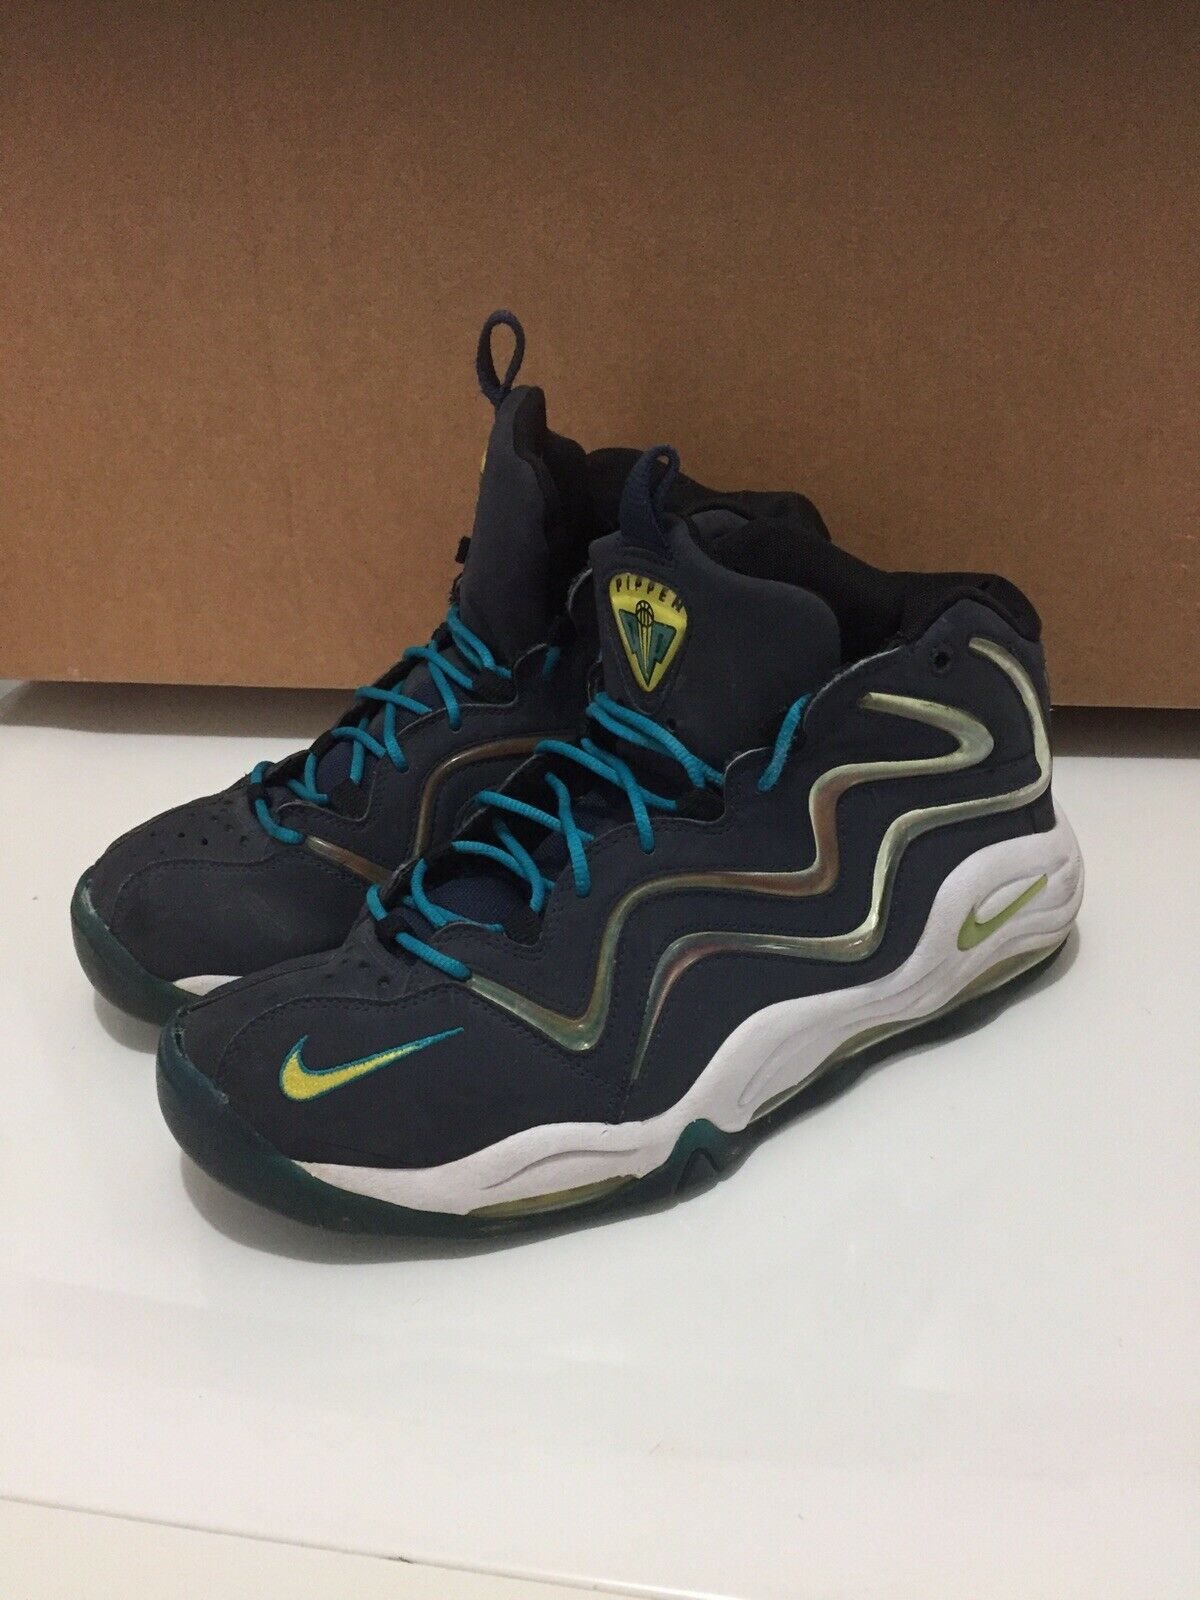 uk availability 04061 85367 Nike Air Pippen Pippen Pippen 1 Navy bluee Men s Size 11 Preowned 547c57